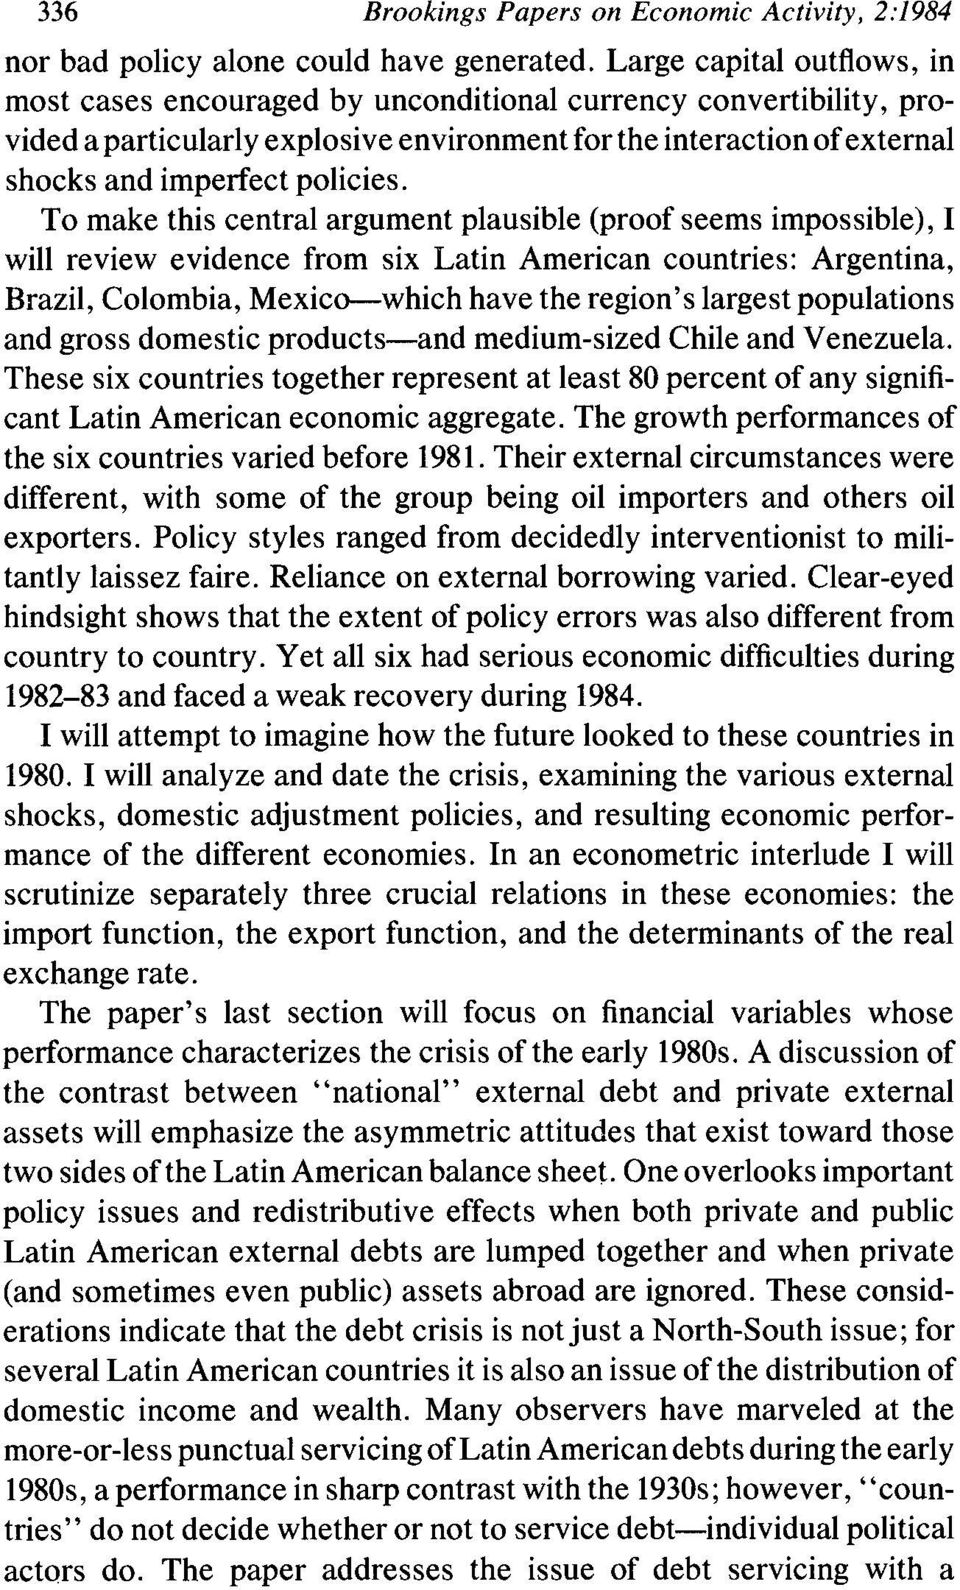 To make this central argument plausible (proof seems impossible), I will review evidence from six Latin American countries: Argentina, Brazil, Colombia, Mexico-which have the region's largest